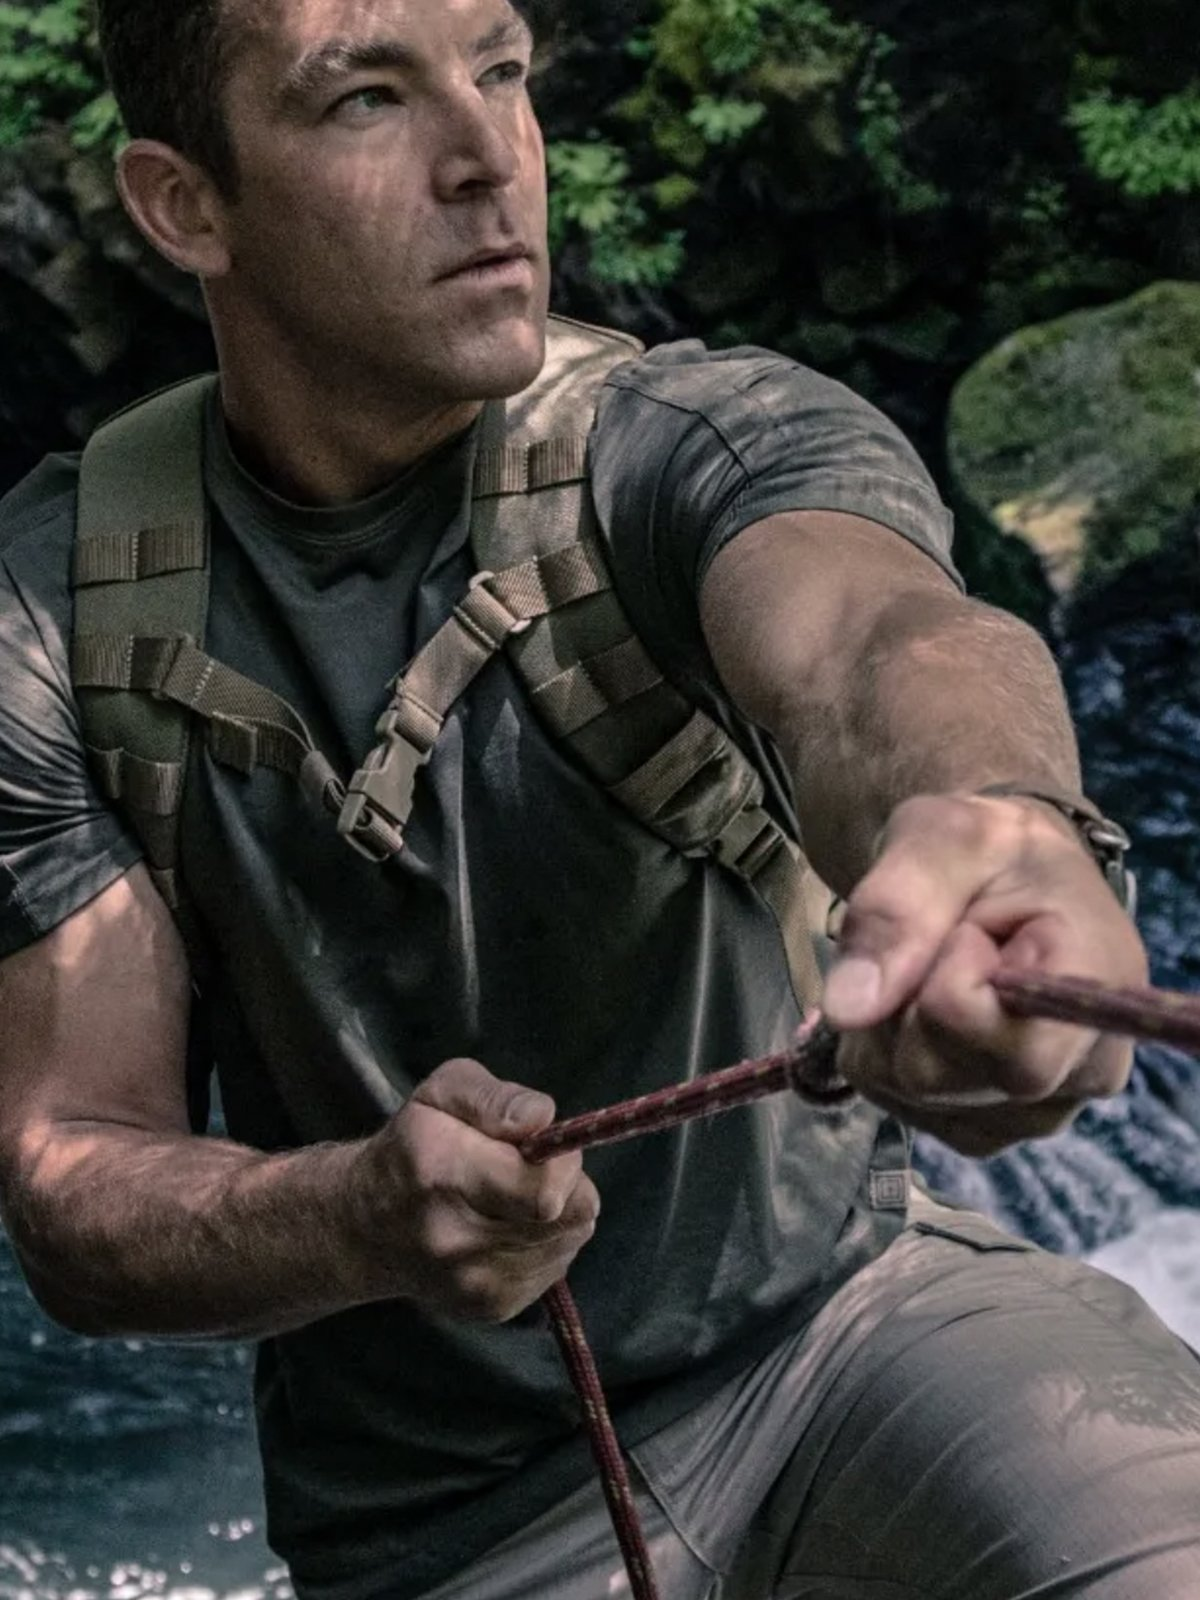 Man outdoors with tactical gear